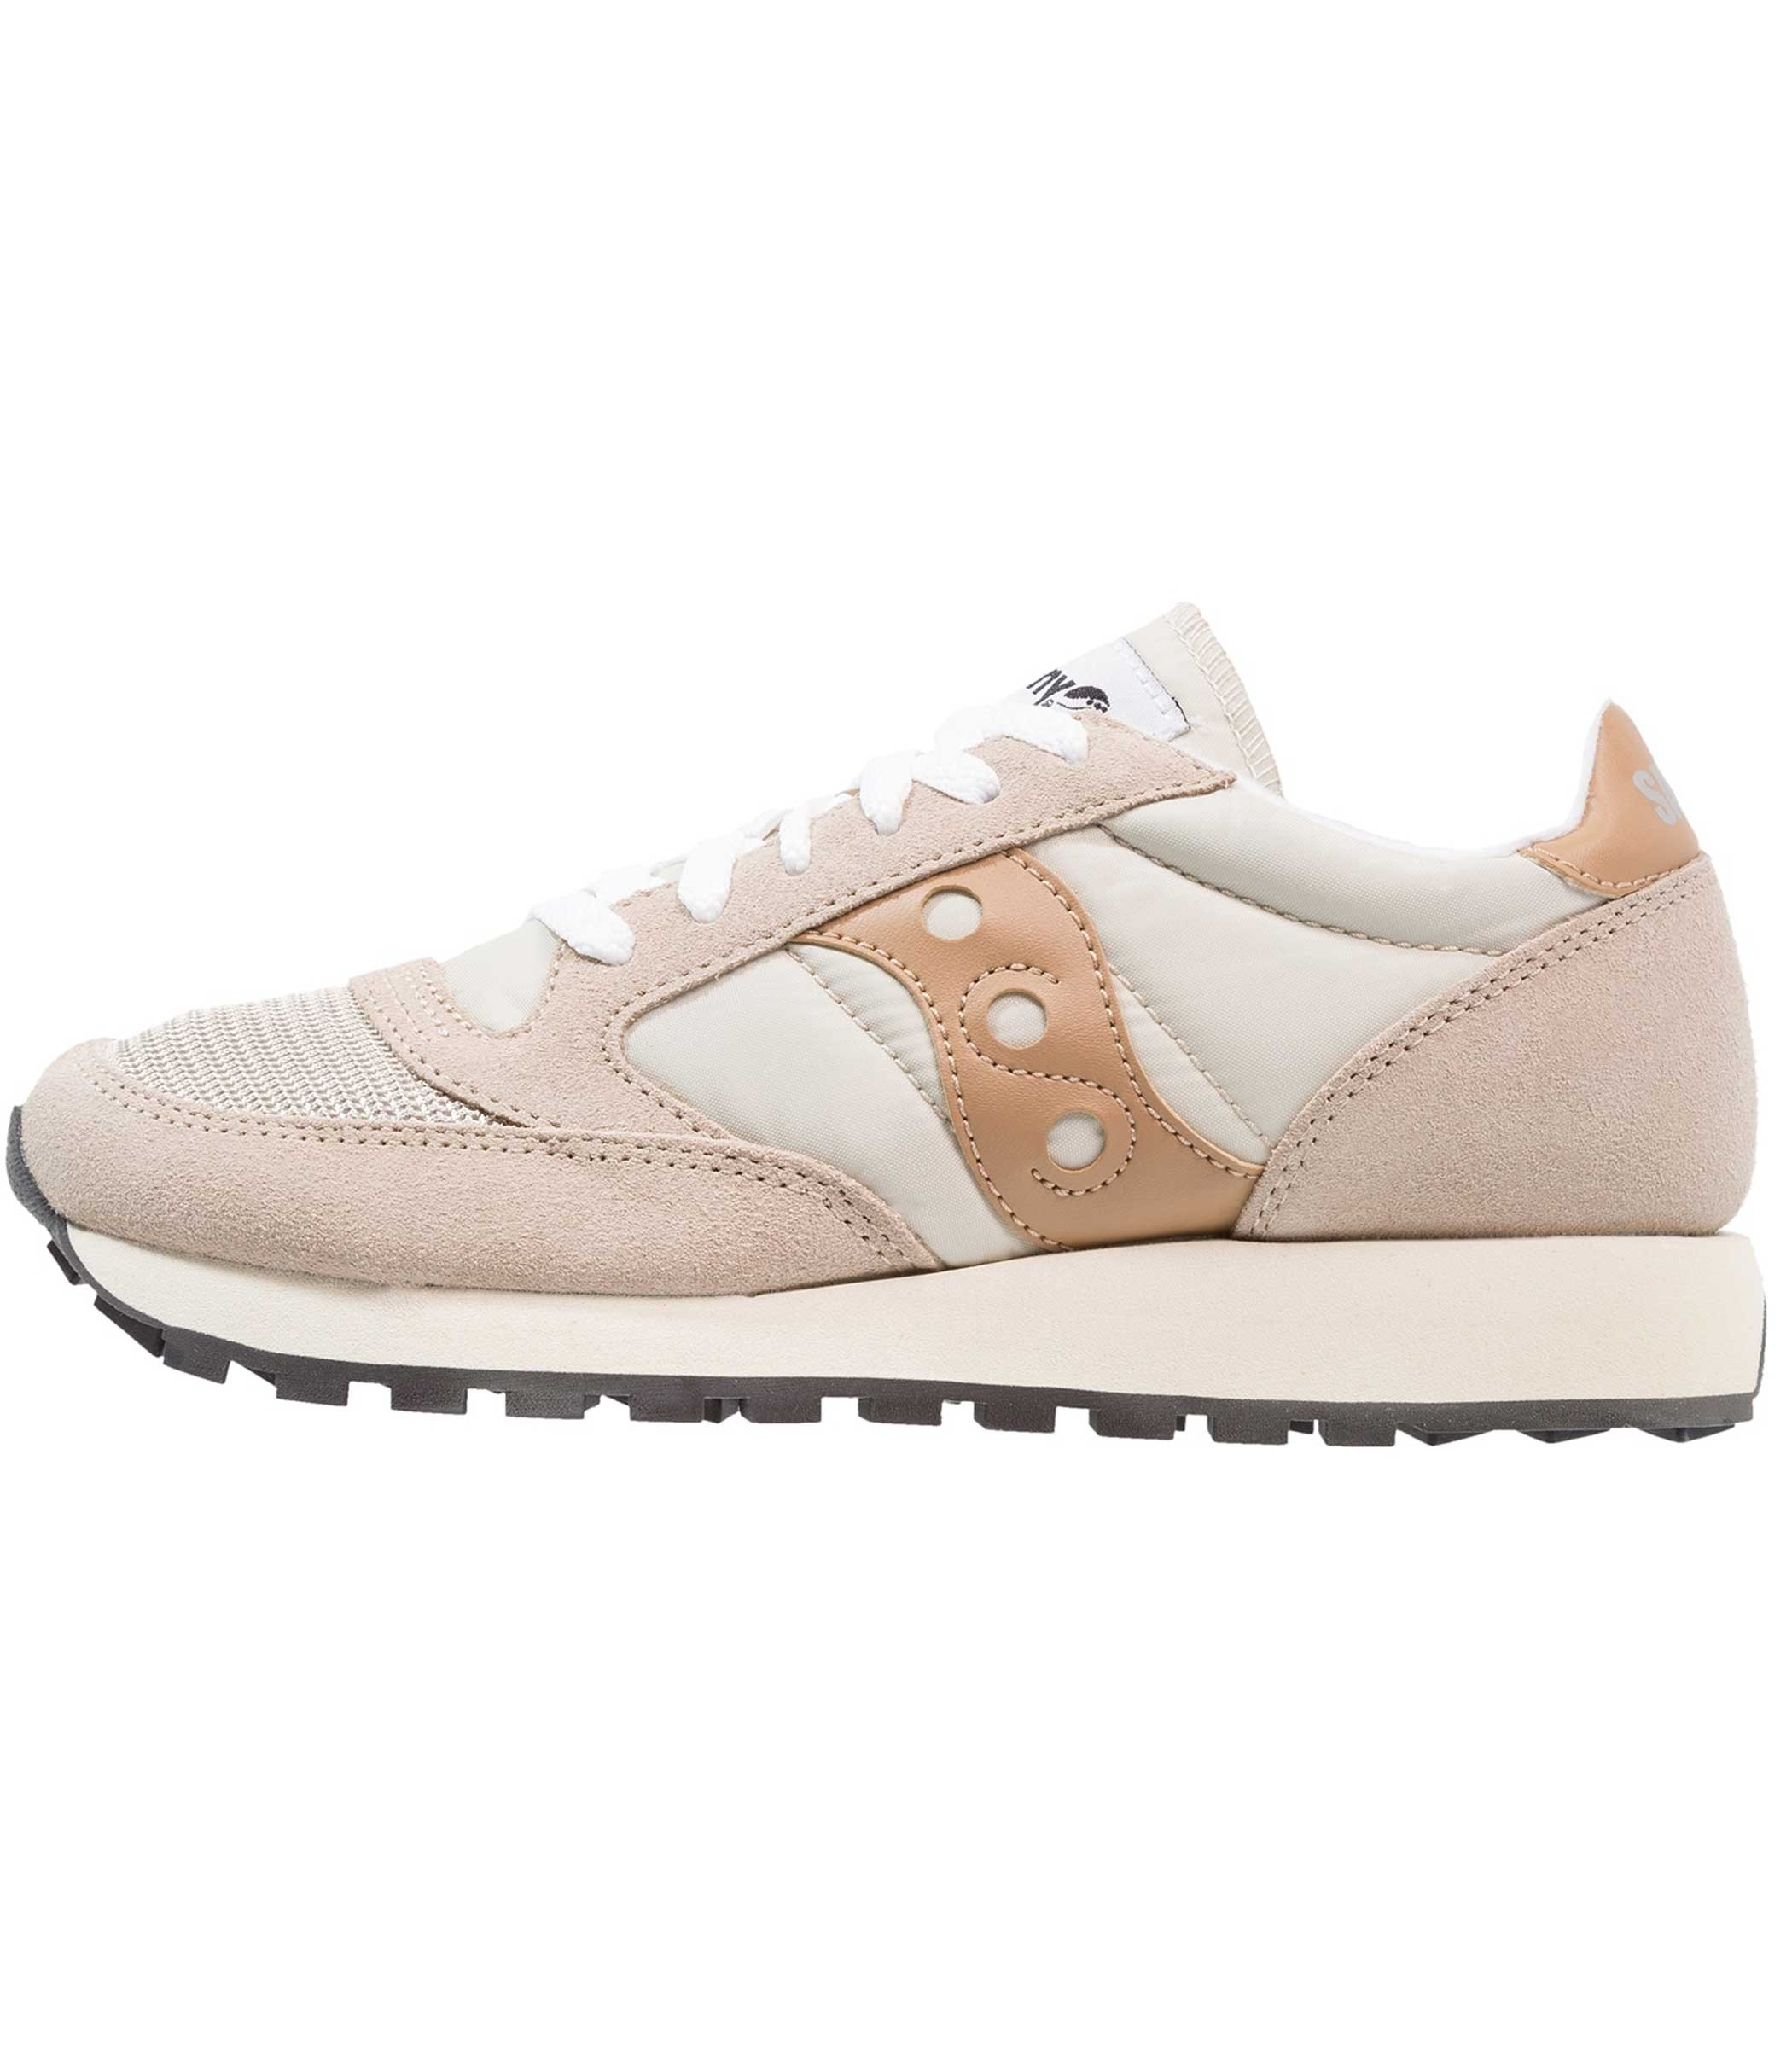 SCARPE DONNA SNEAKERS SAUCONY JAZZ ORIGINAL S60368 26